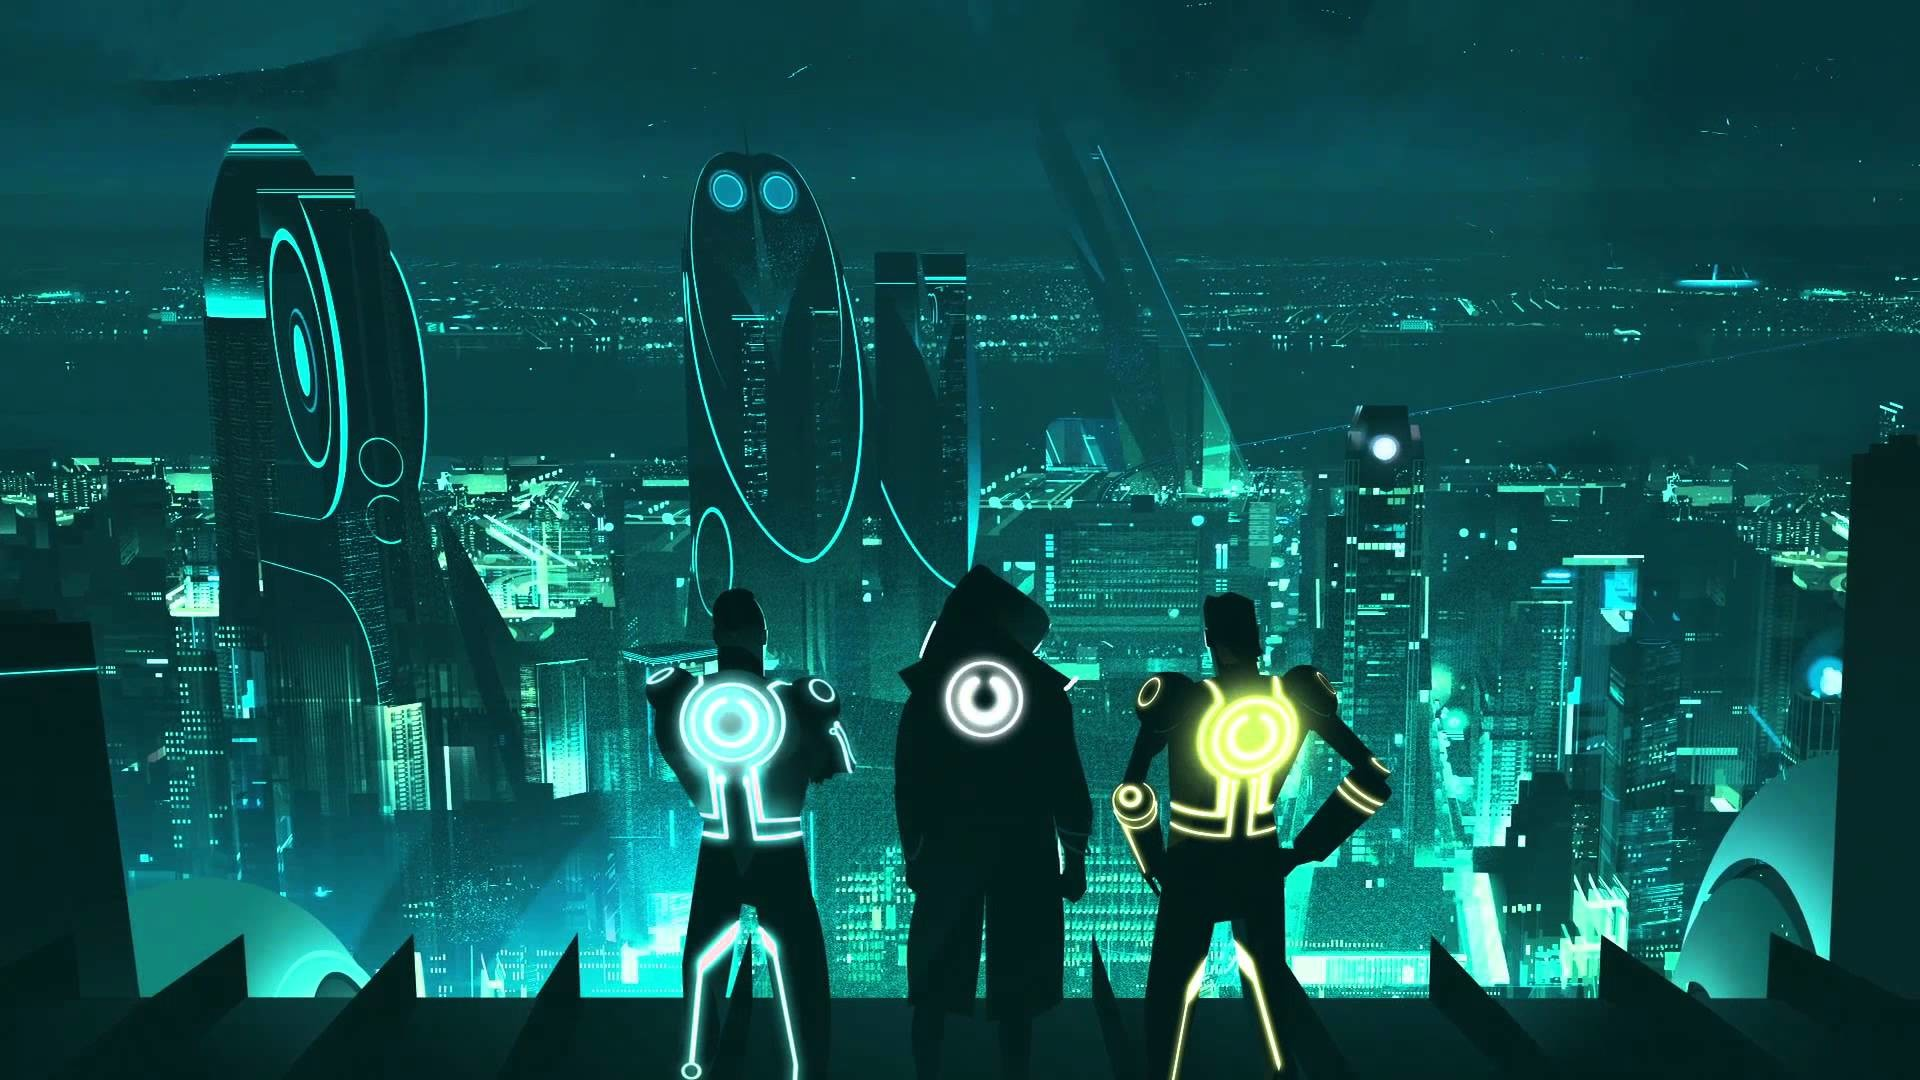 Tron City Wallpapers 26822